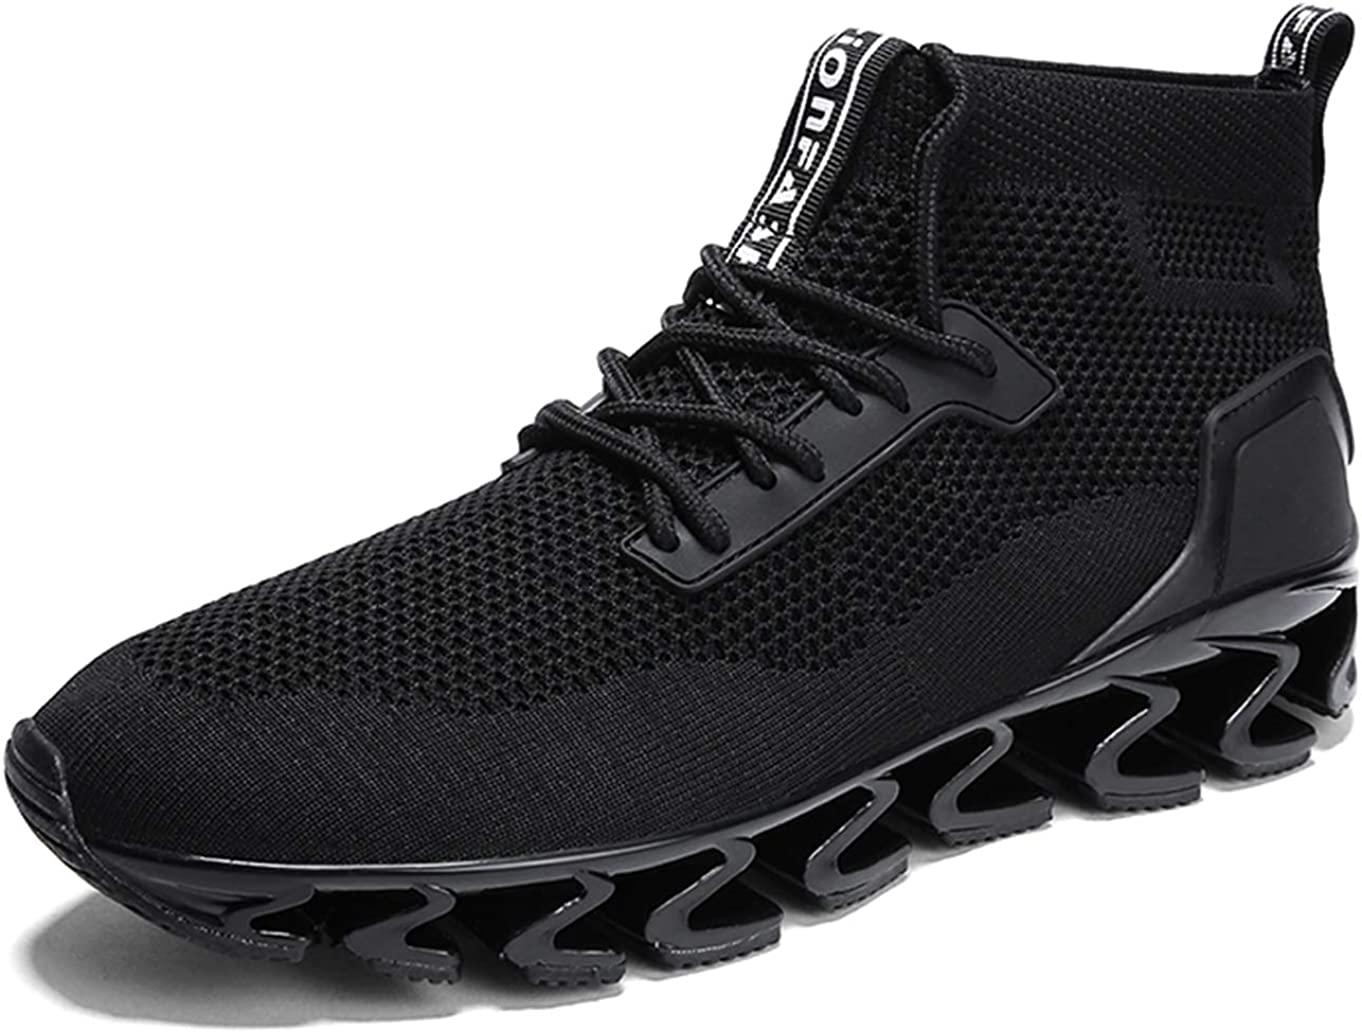 SKDOIUL Sports Sneakers for Men Mesh Breathable Fashion Youth Big Boys Trail Walking Shoes Black White Red